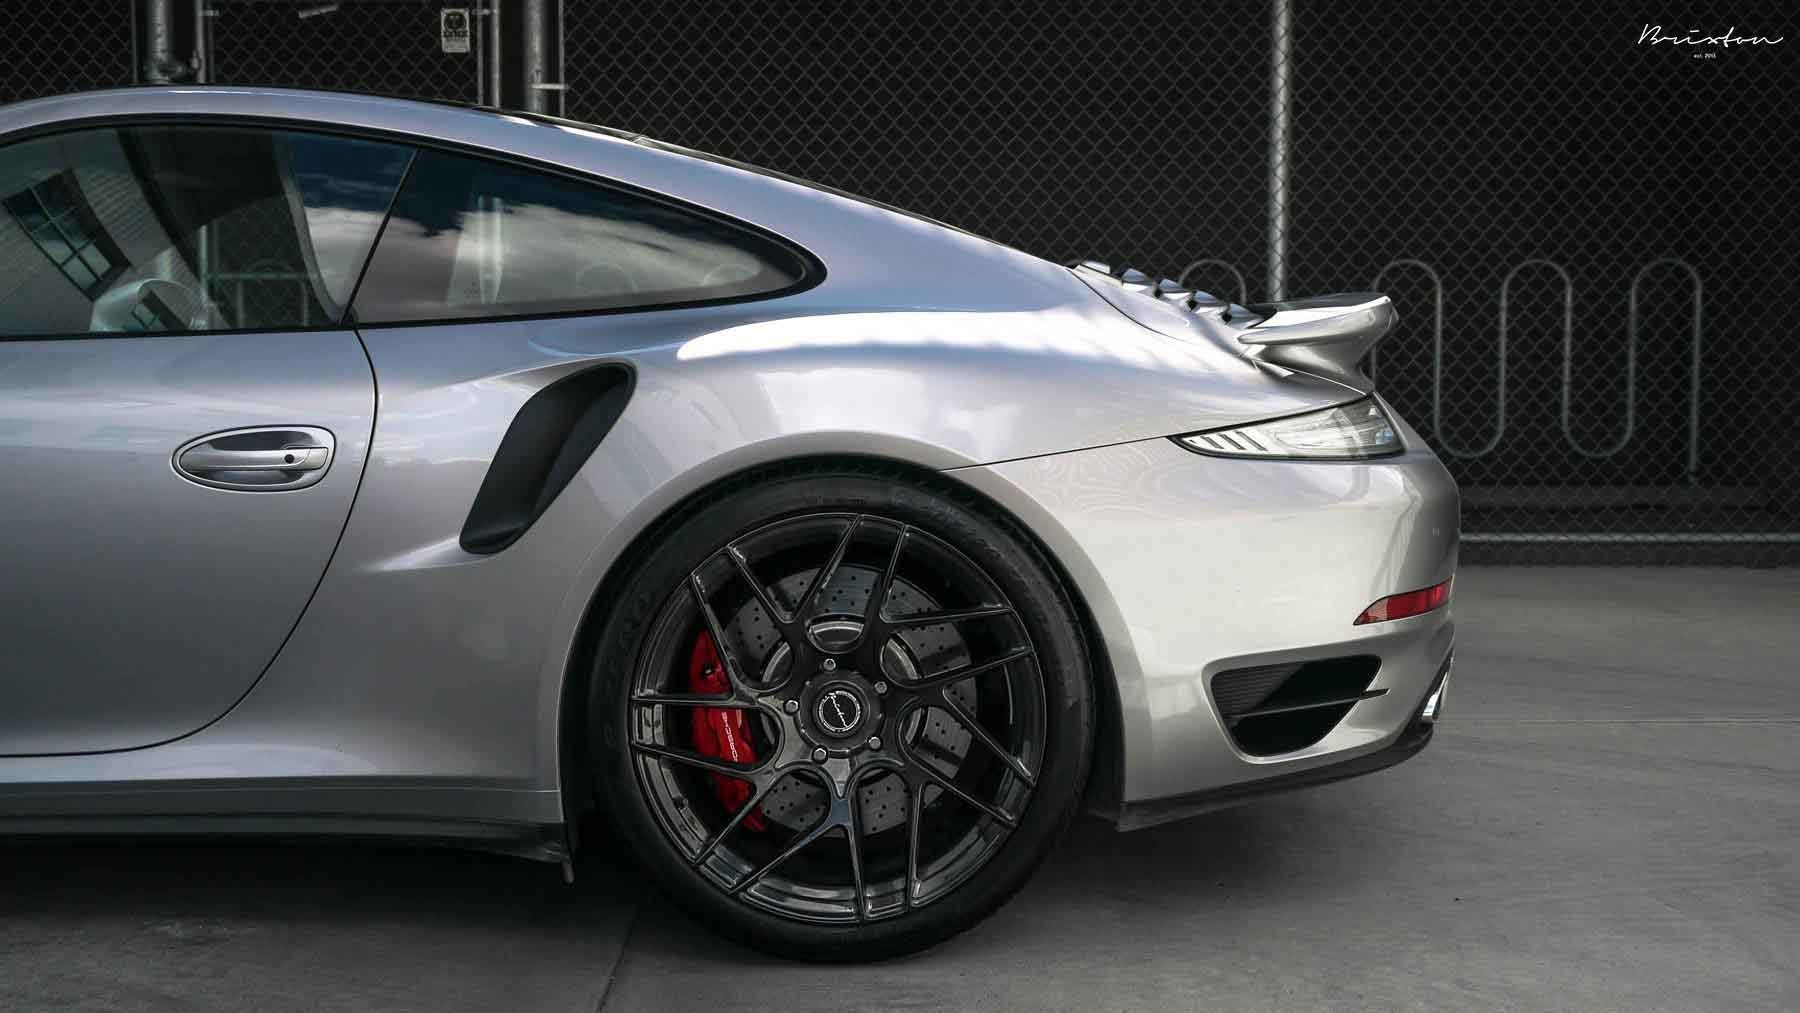 images-products-1-2543-232974831-brixton-forged-silver-porsche-991-turbo-s-brixton-forged-cm7-ultrasport-1-piece-concave-forged-w.jpg